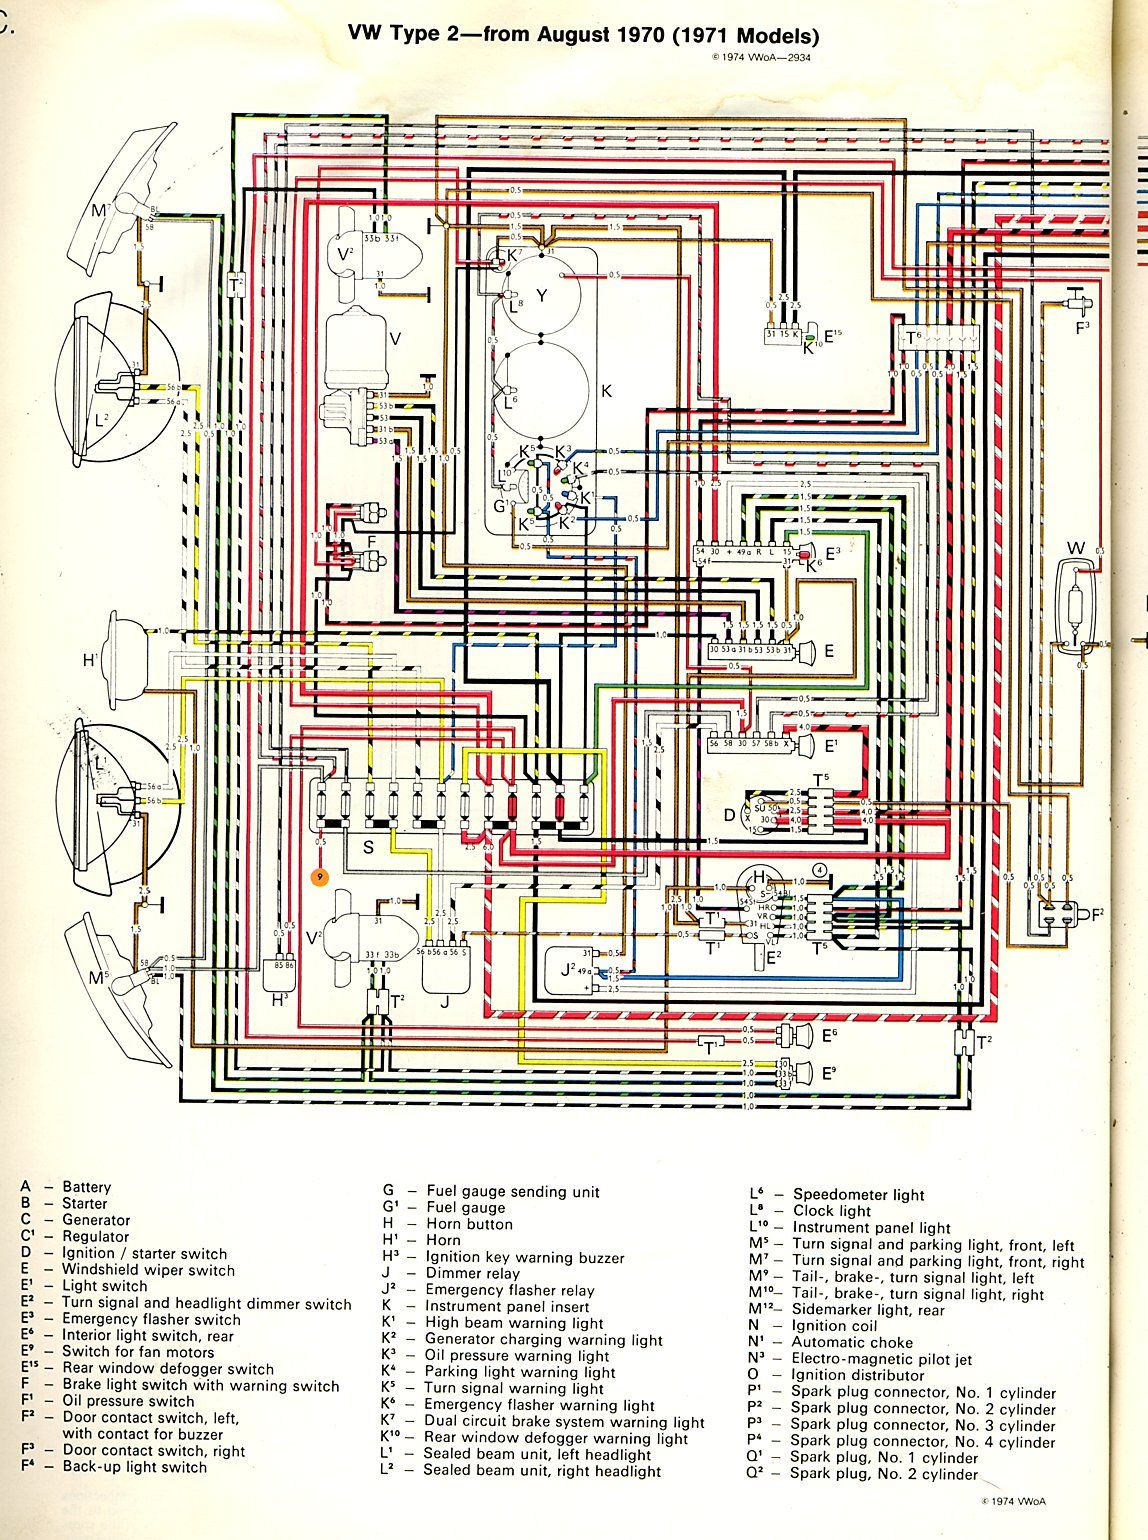 71 Vw Voltage Regulator Wiring Diagram Just Another Volkswagen Images Gallery